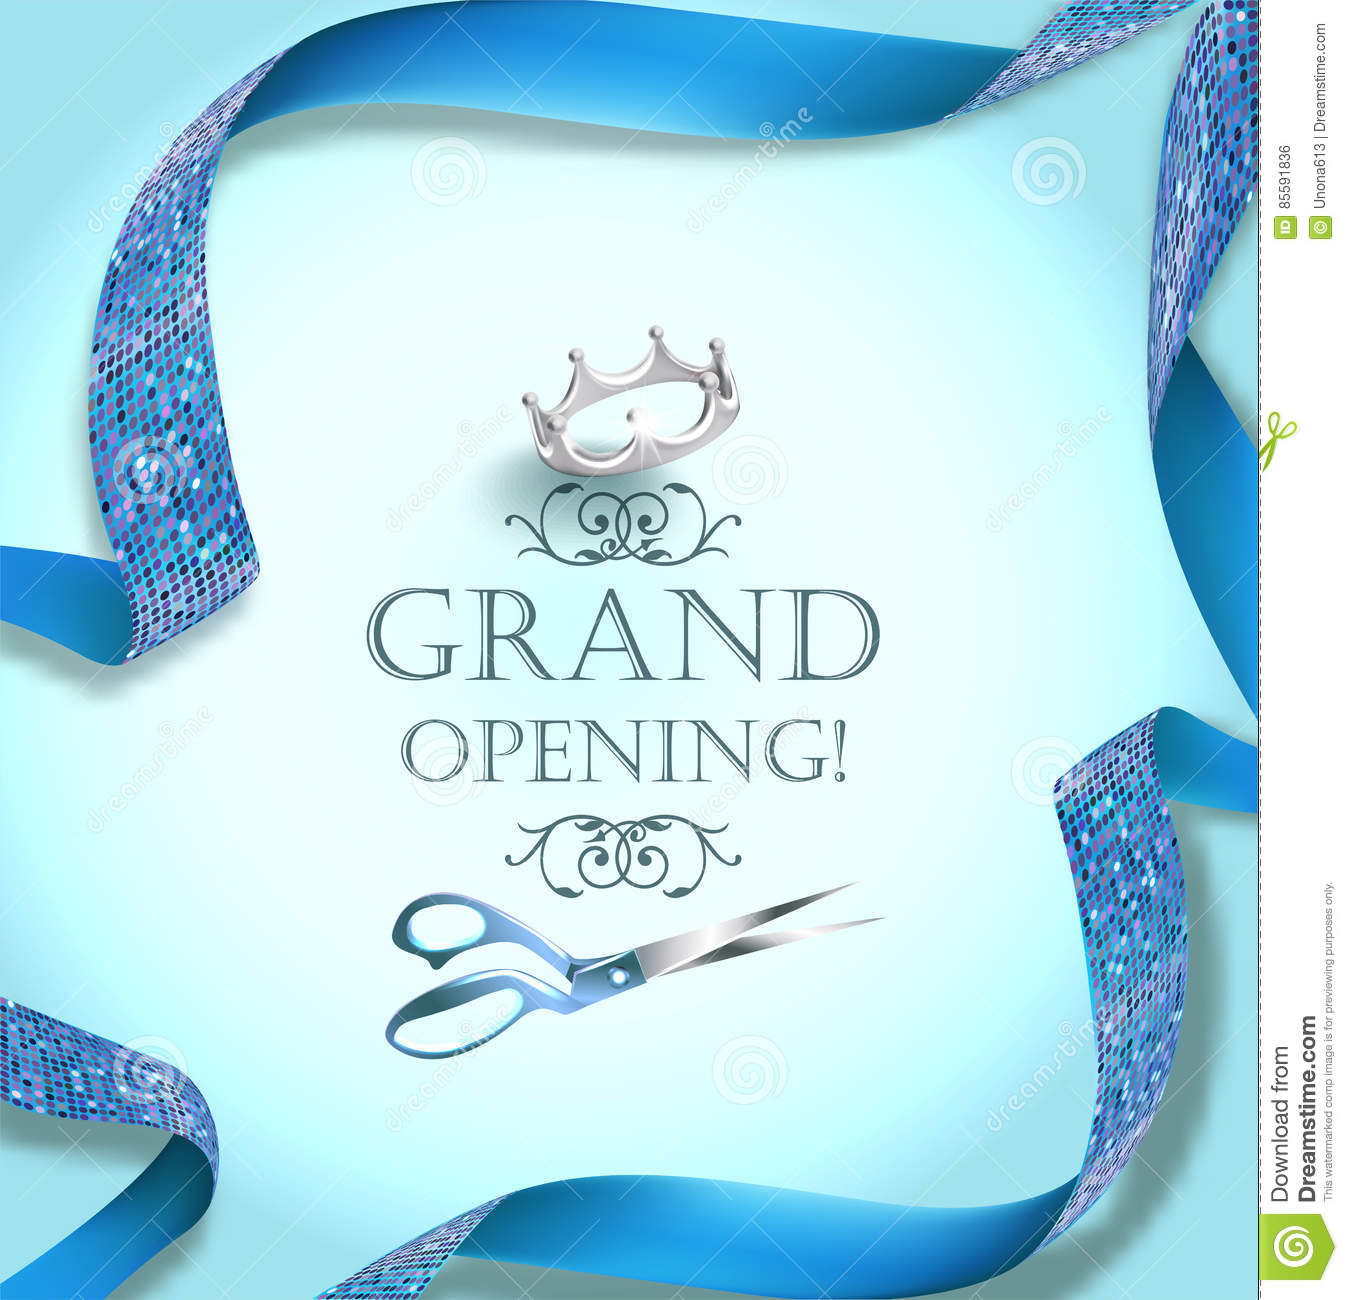 Grand Opening Invitation Card With Scissors And Blue Curly Ribbon – Grand Opening Invitation Cards